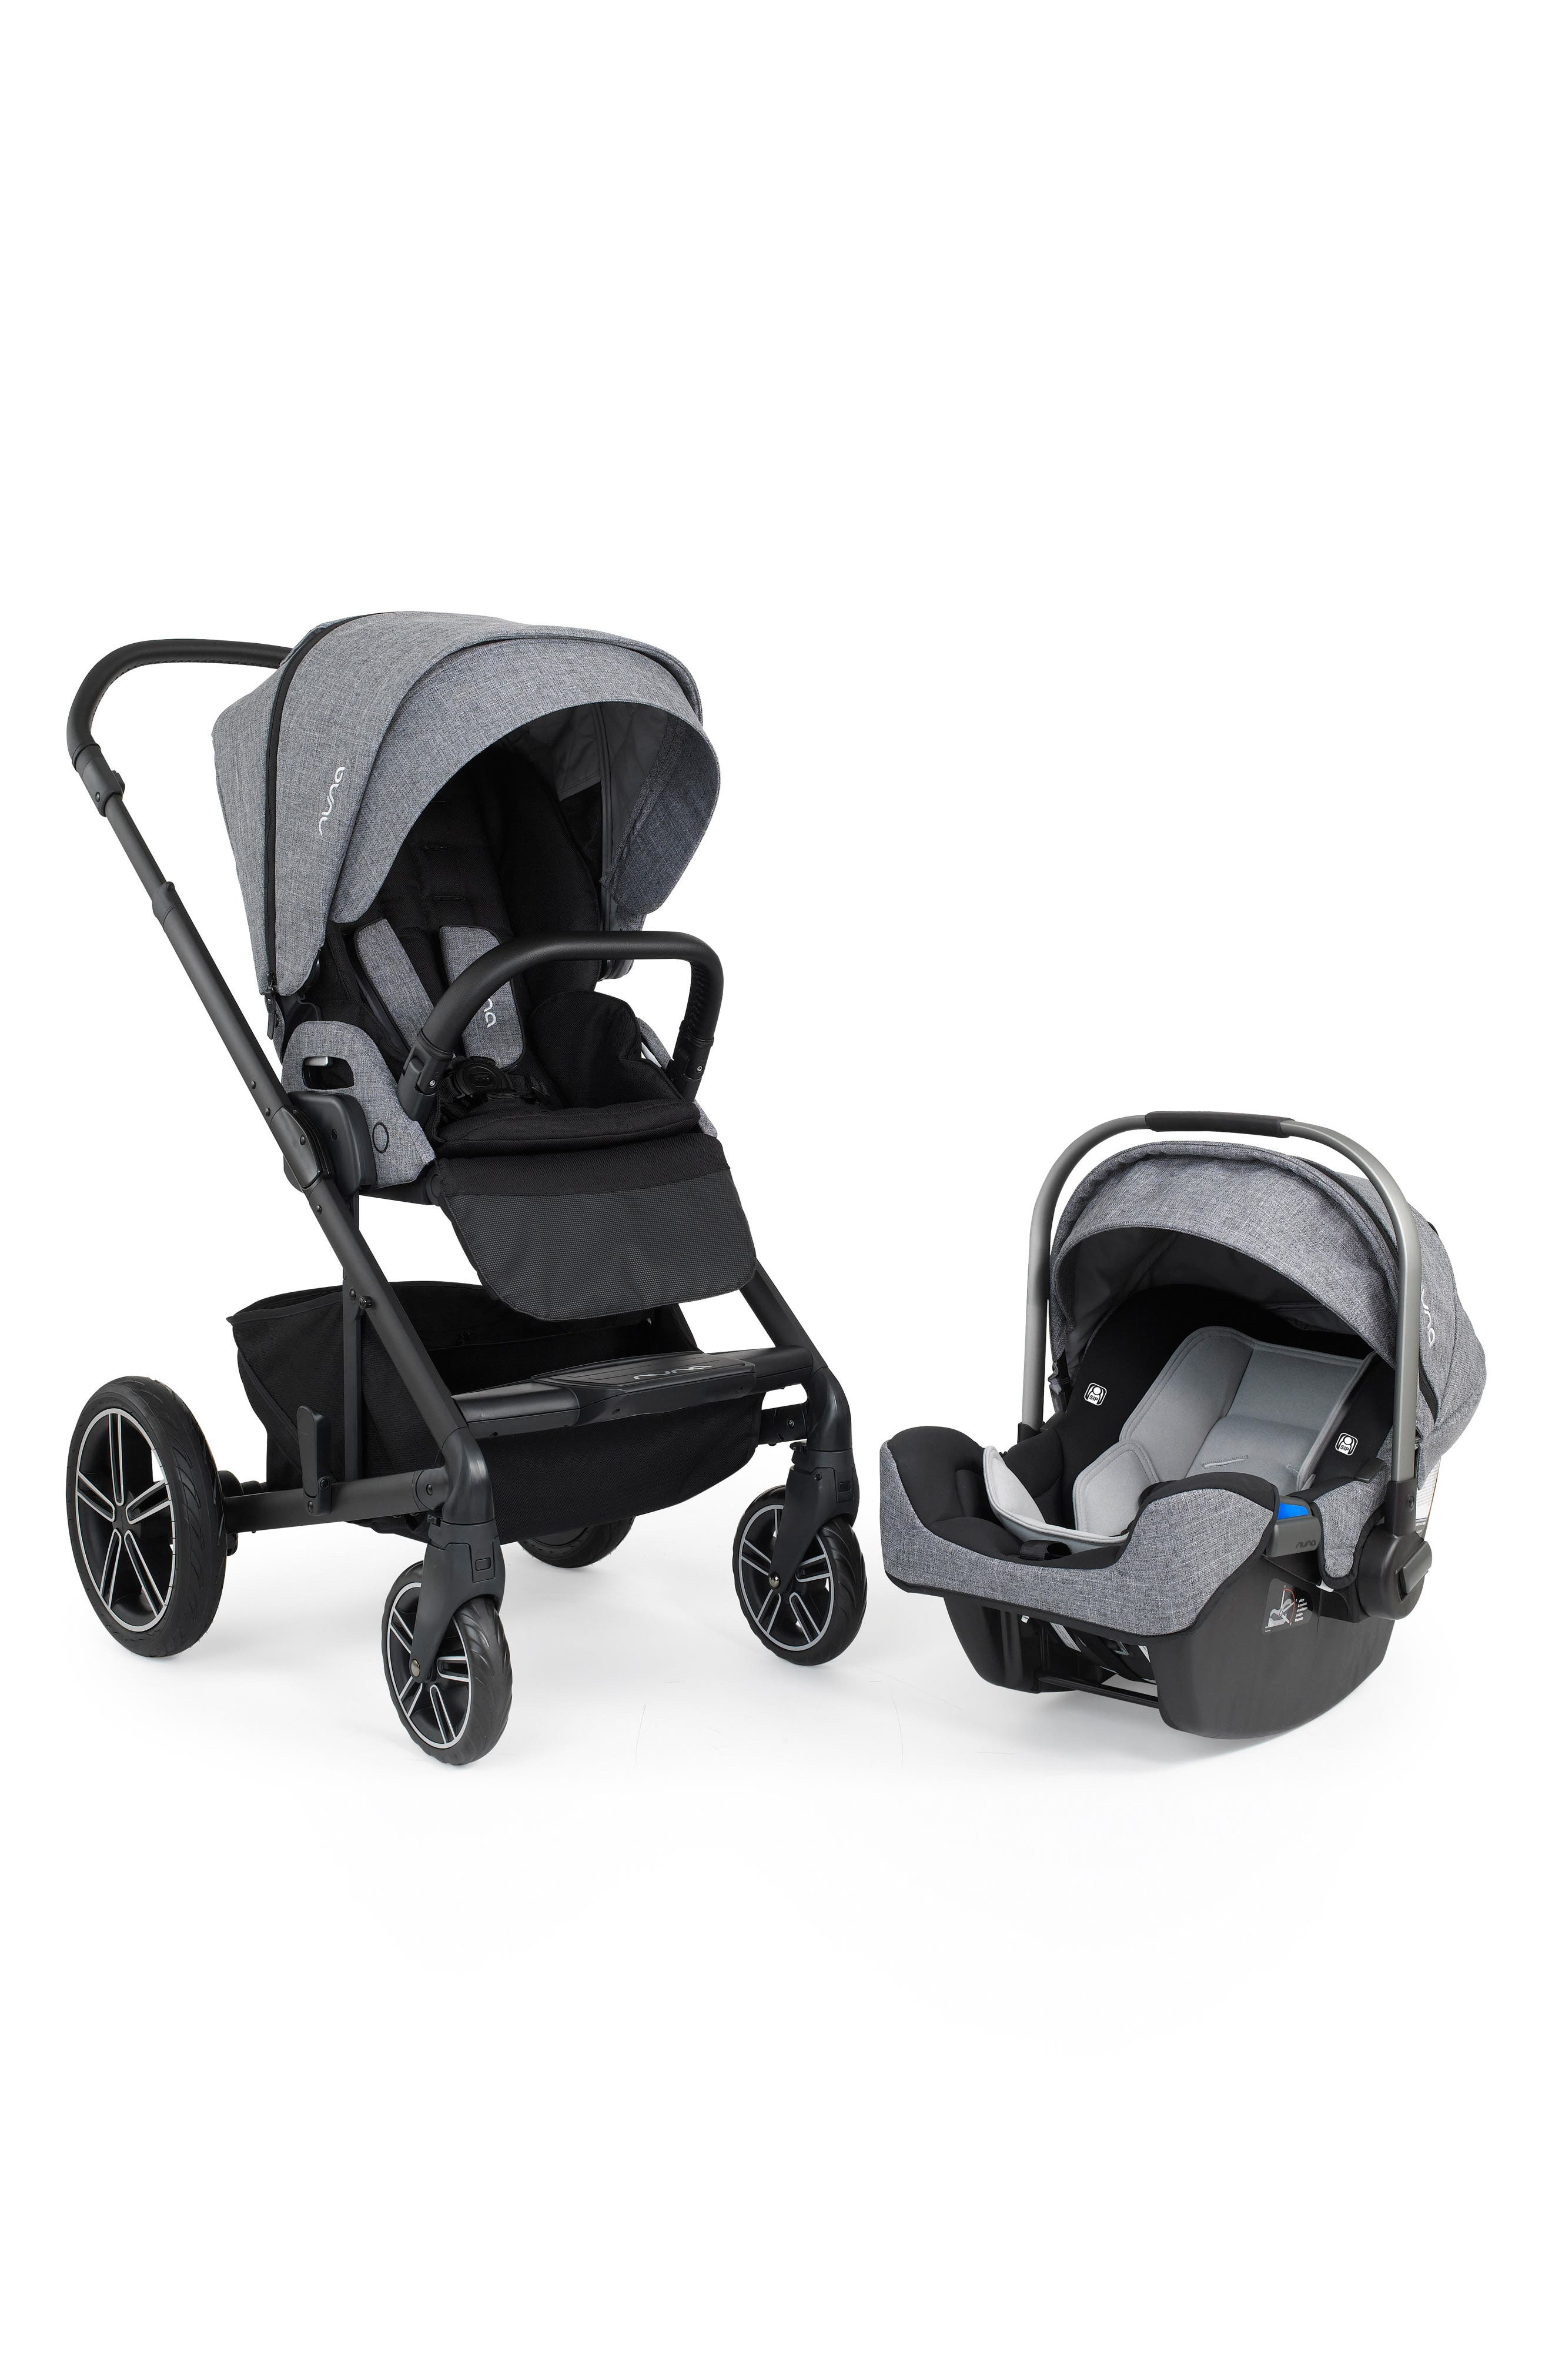 MIXX<sup>™</sup> 2 Stroller System & PIPA<sup>™</sup> Car Seat Set,                             Main thumbnail 1, color,                             020